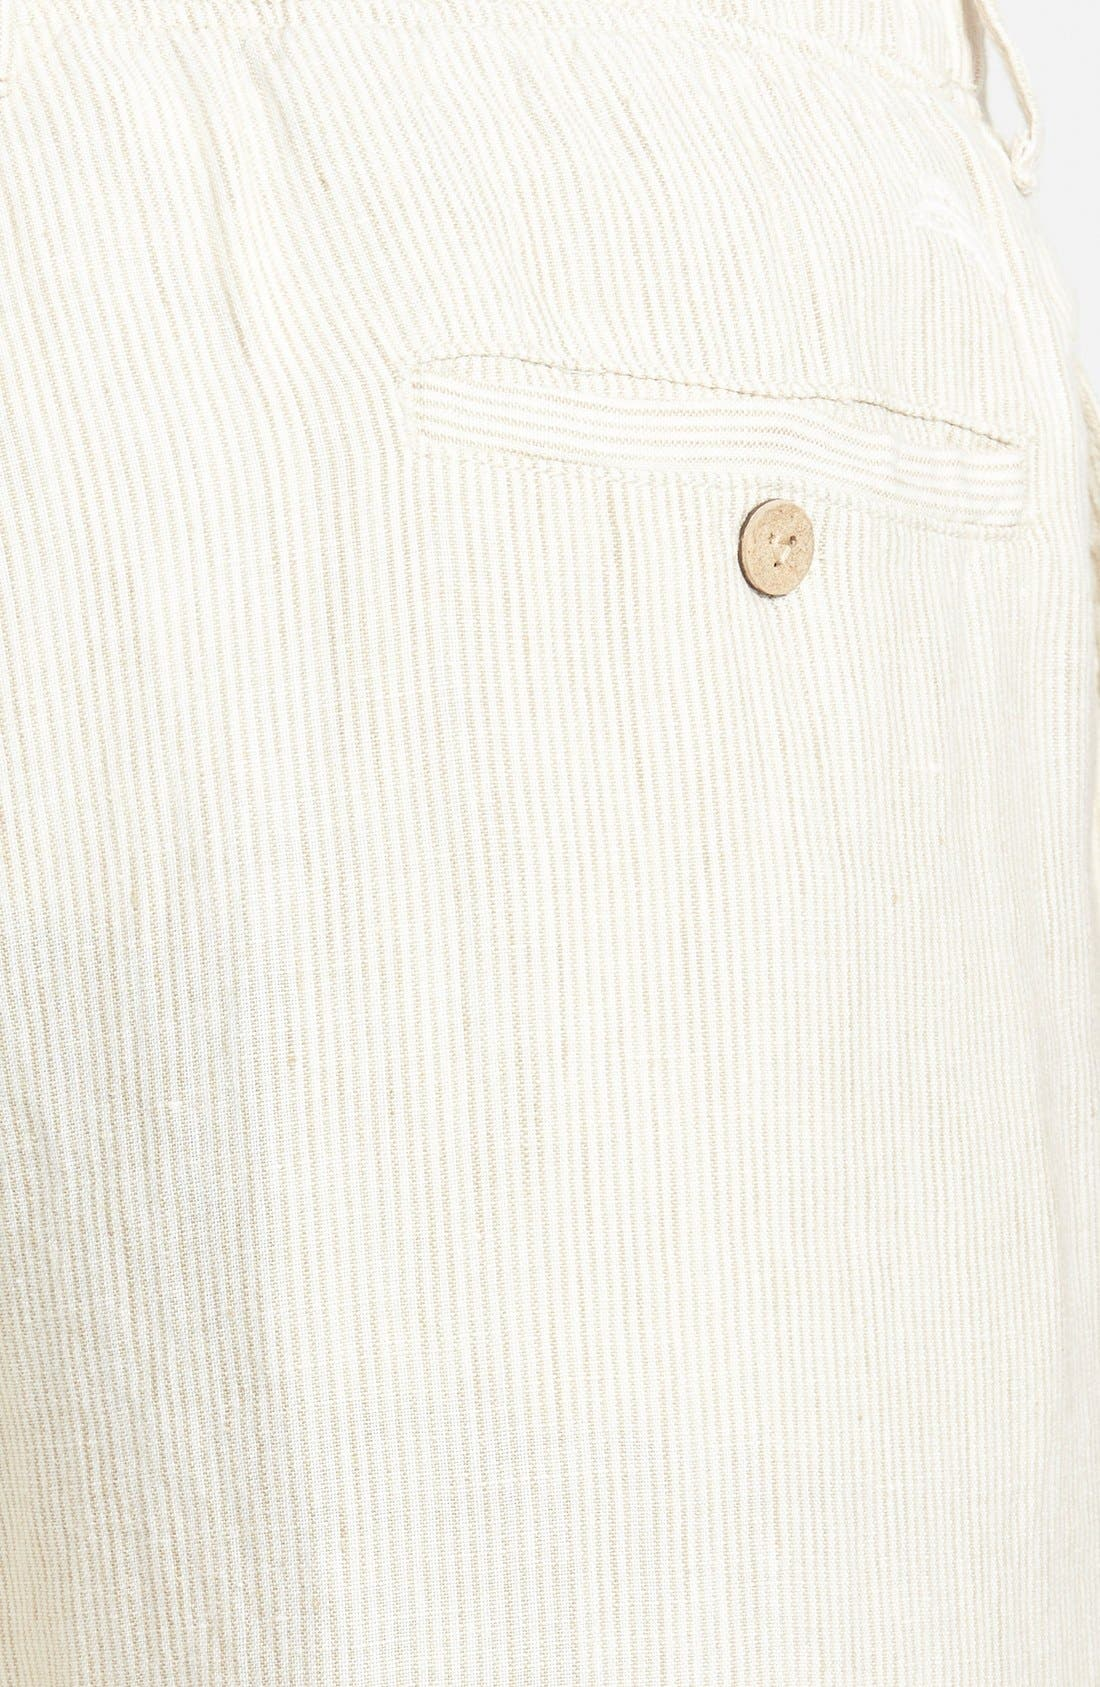 Alternate Image 3  - Tommy Bahama 'Line of the Times' Linen Pants